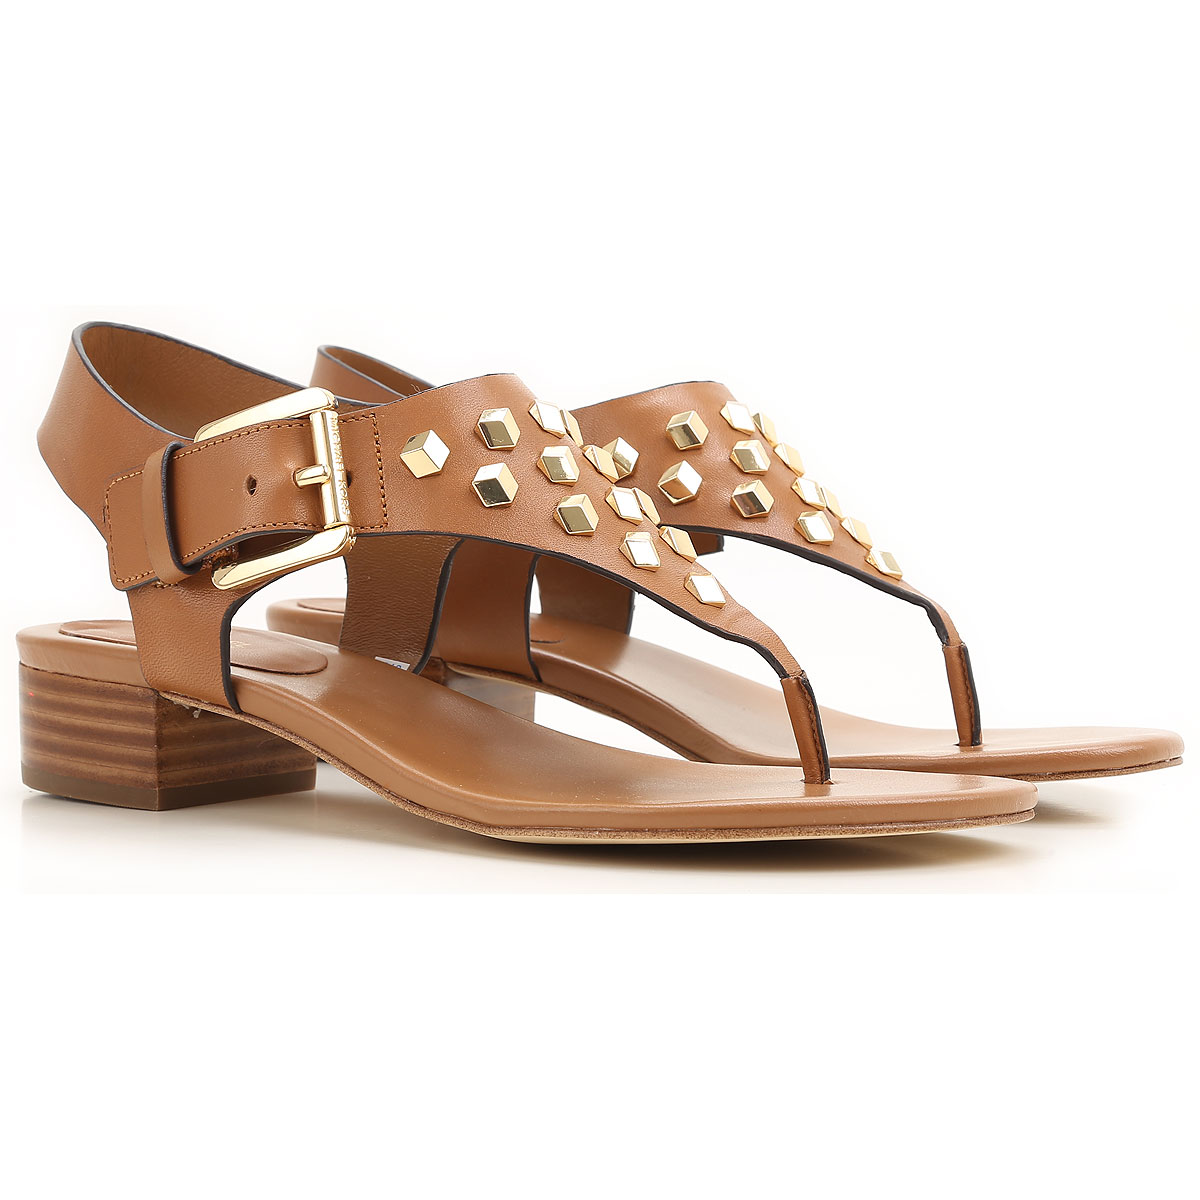 Michael Kors Sandals for Women On Sale in Outlet, Leather Brown, Leather, 2017, 4